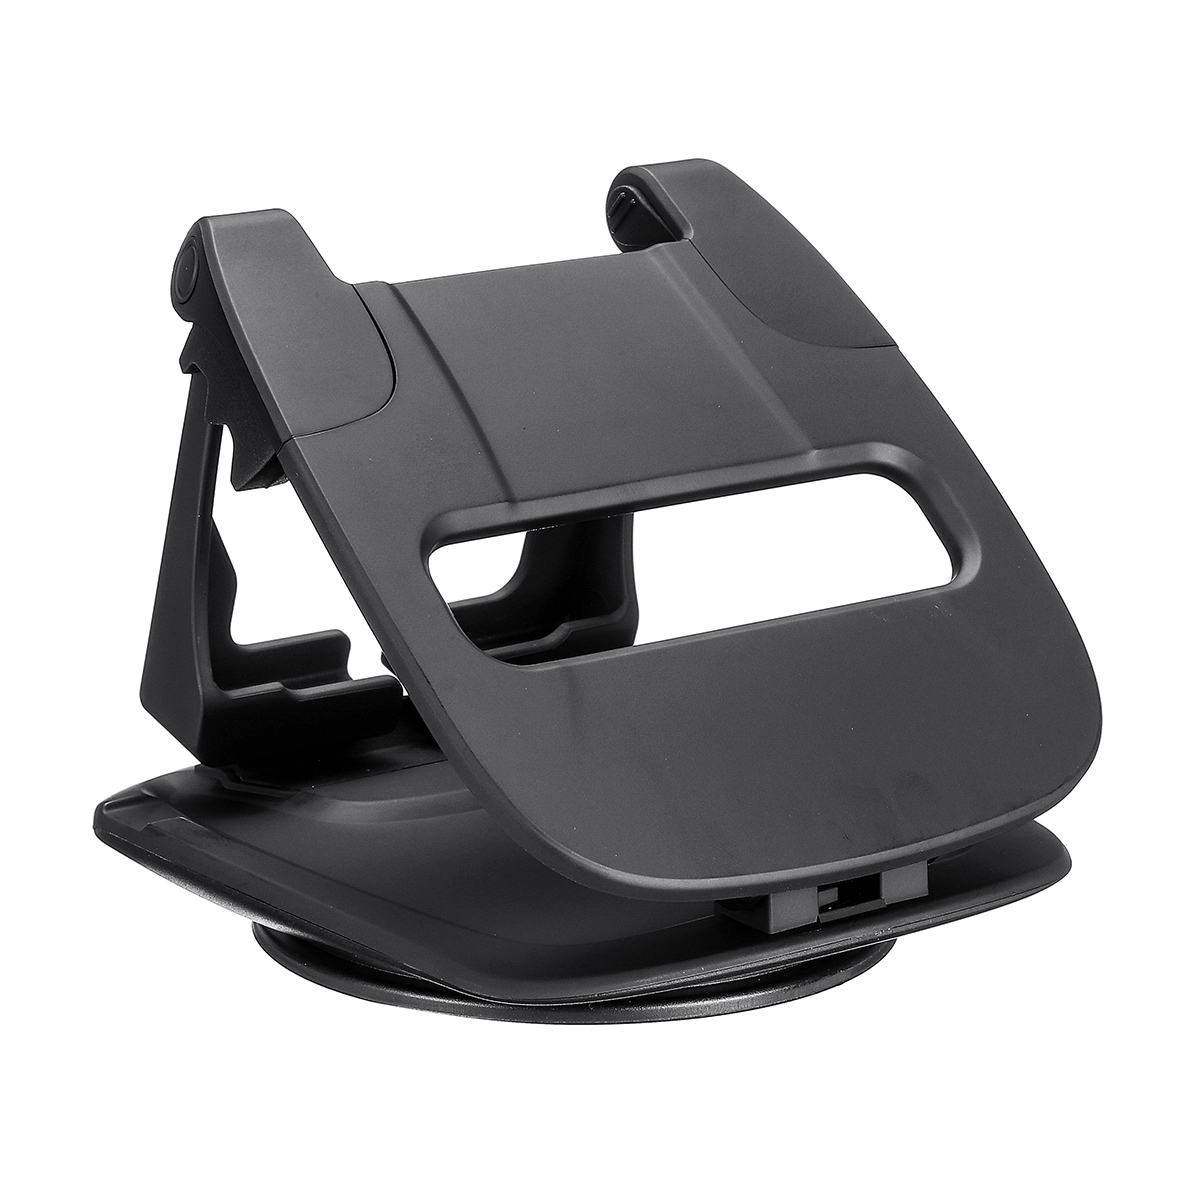 Dashboard Suction Cup Car Phone Holder Clamp Car Mount 360 Degree Rotation For 3.5-6.5 Inch Smart Phone iPhone Samsung